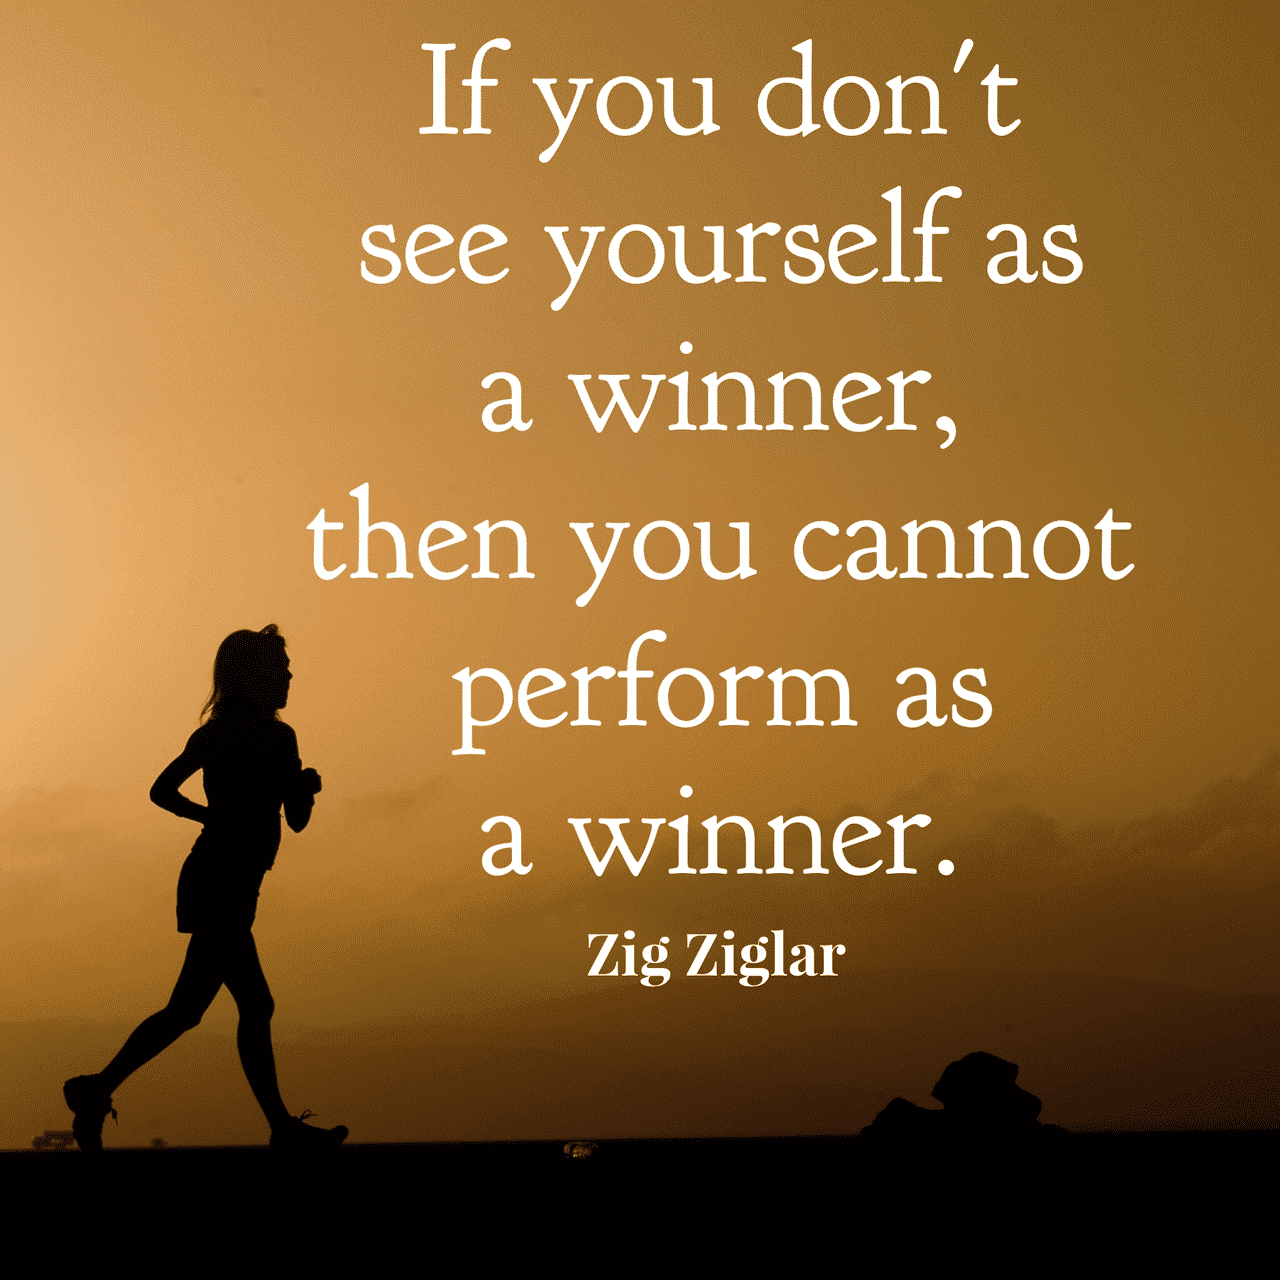 Quotes Zig Ziglar Mesmerizing 25 Motivational Zig Ziglar Quotes